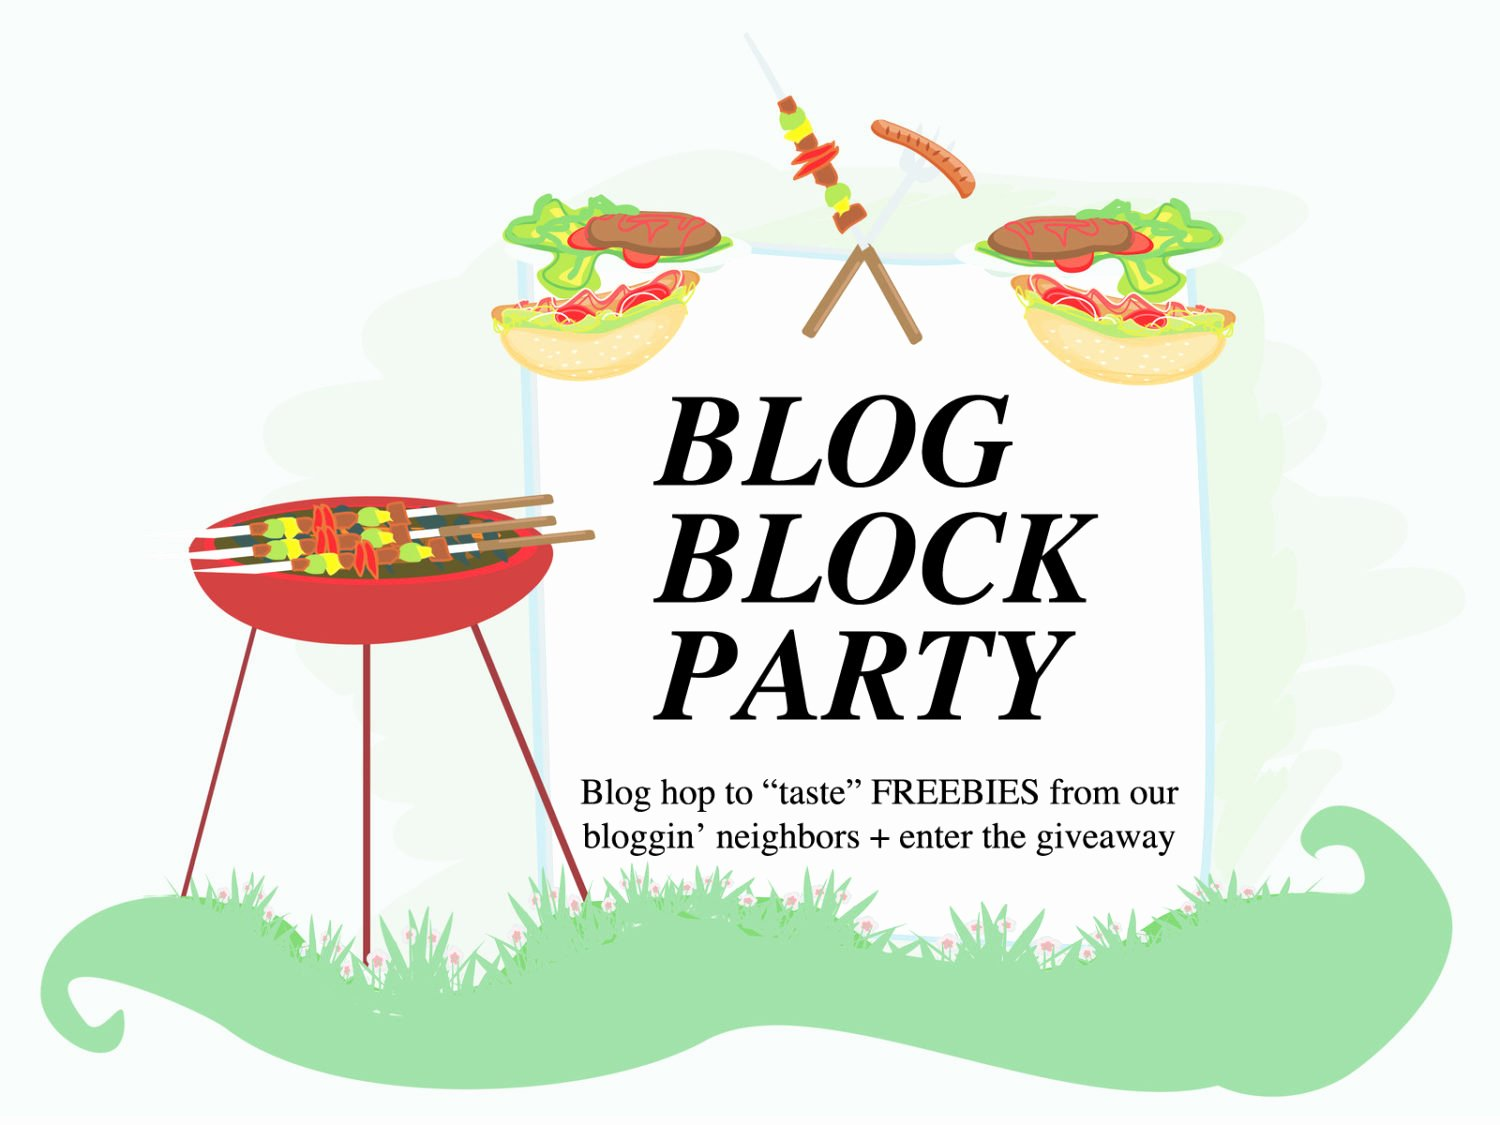 Neighborhood Block Party Flyer Template Elegant Blog Block Party Blog Hop to Taste Freebies From Our